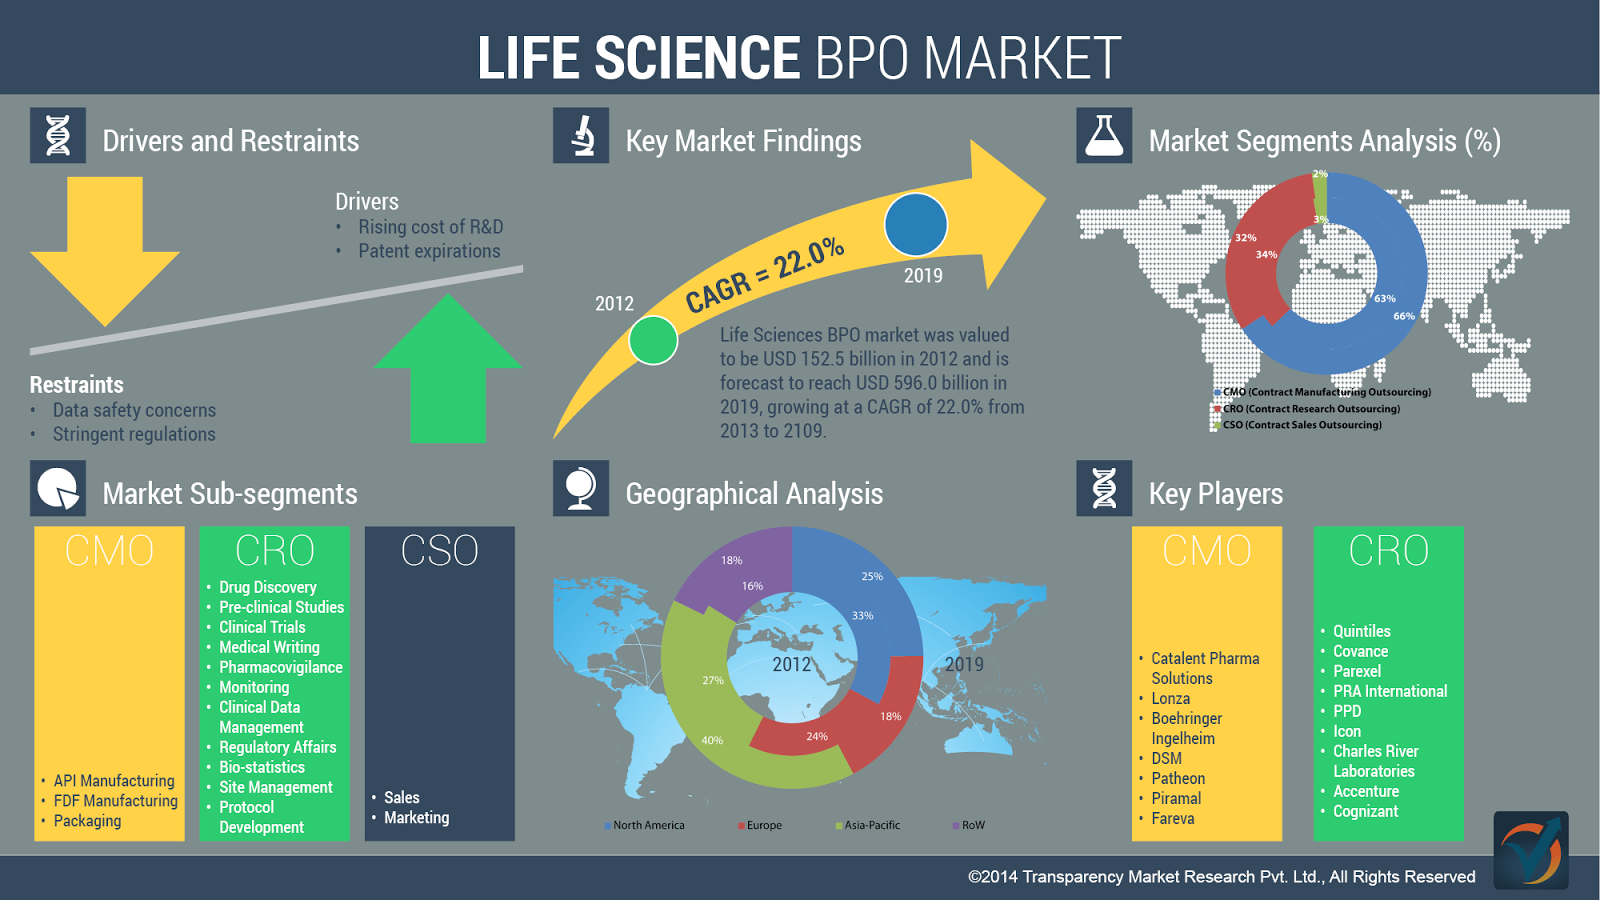 Life Sciences BPO Market